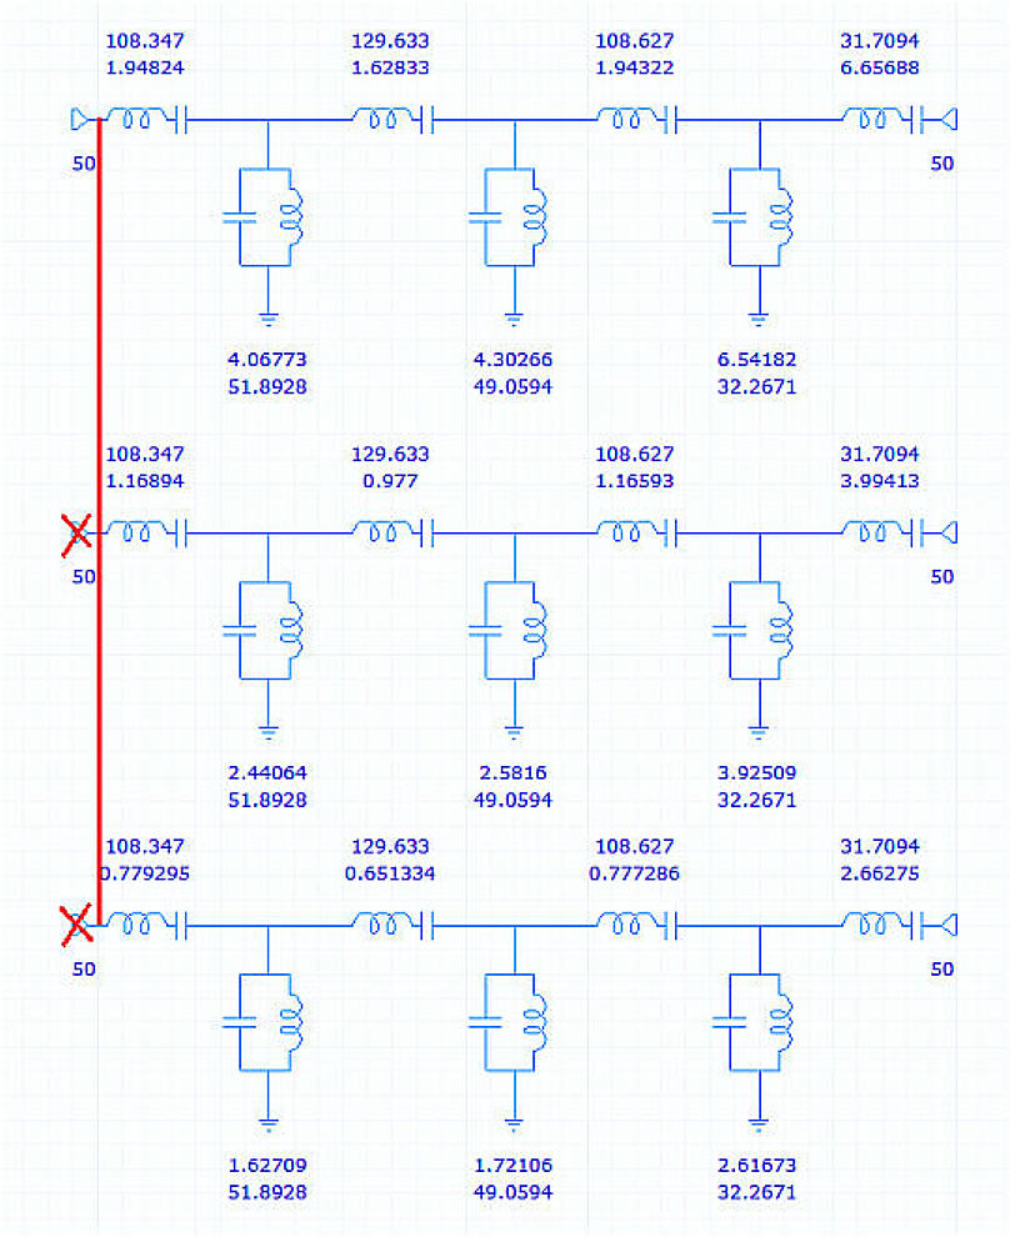 User Guide 134 Ifilter Filter Wizard Note This Diagram Does Not Reflect The Pysical Layout Of Input And Channels Are Normally Connected At Source End There Is Only One Termination However For Display Purposes Displayed As If